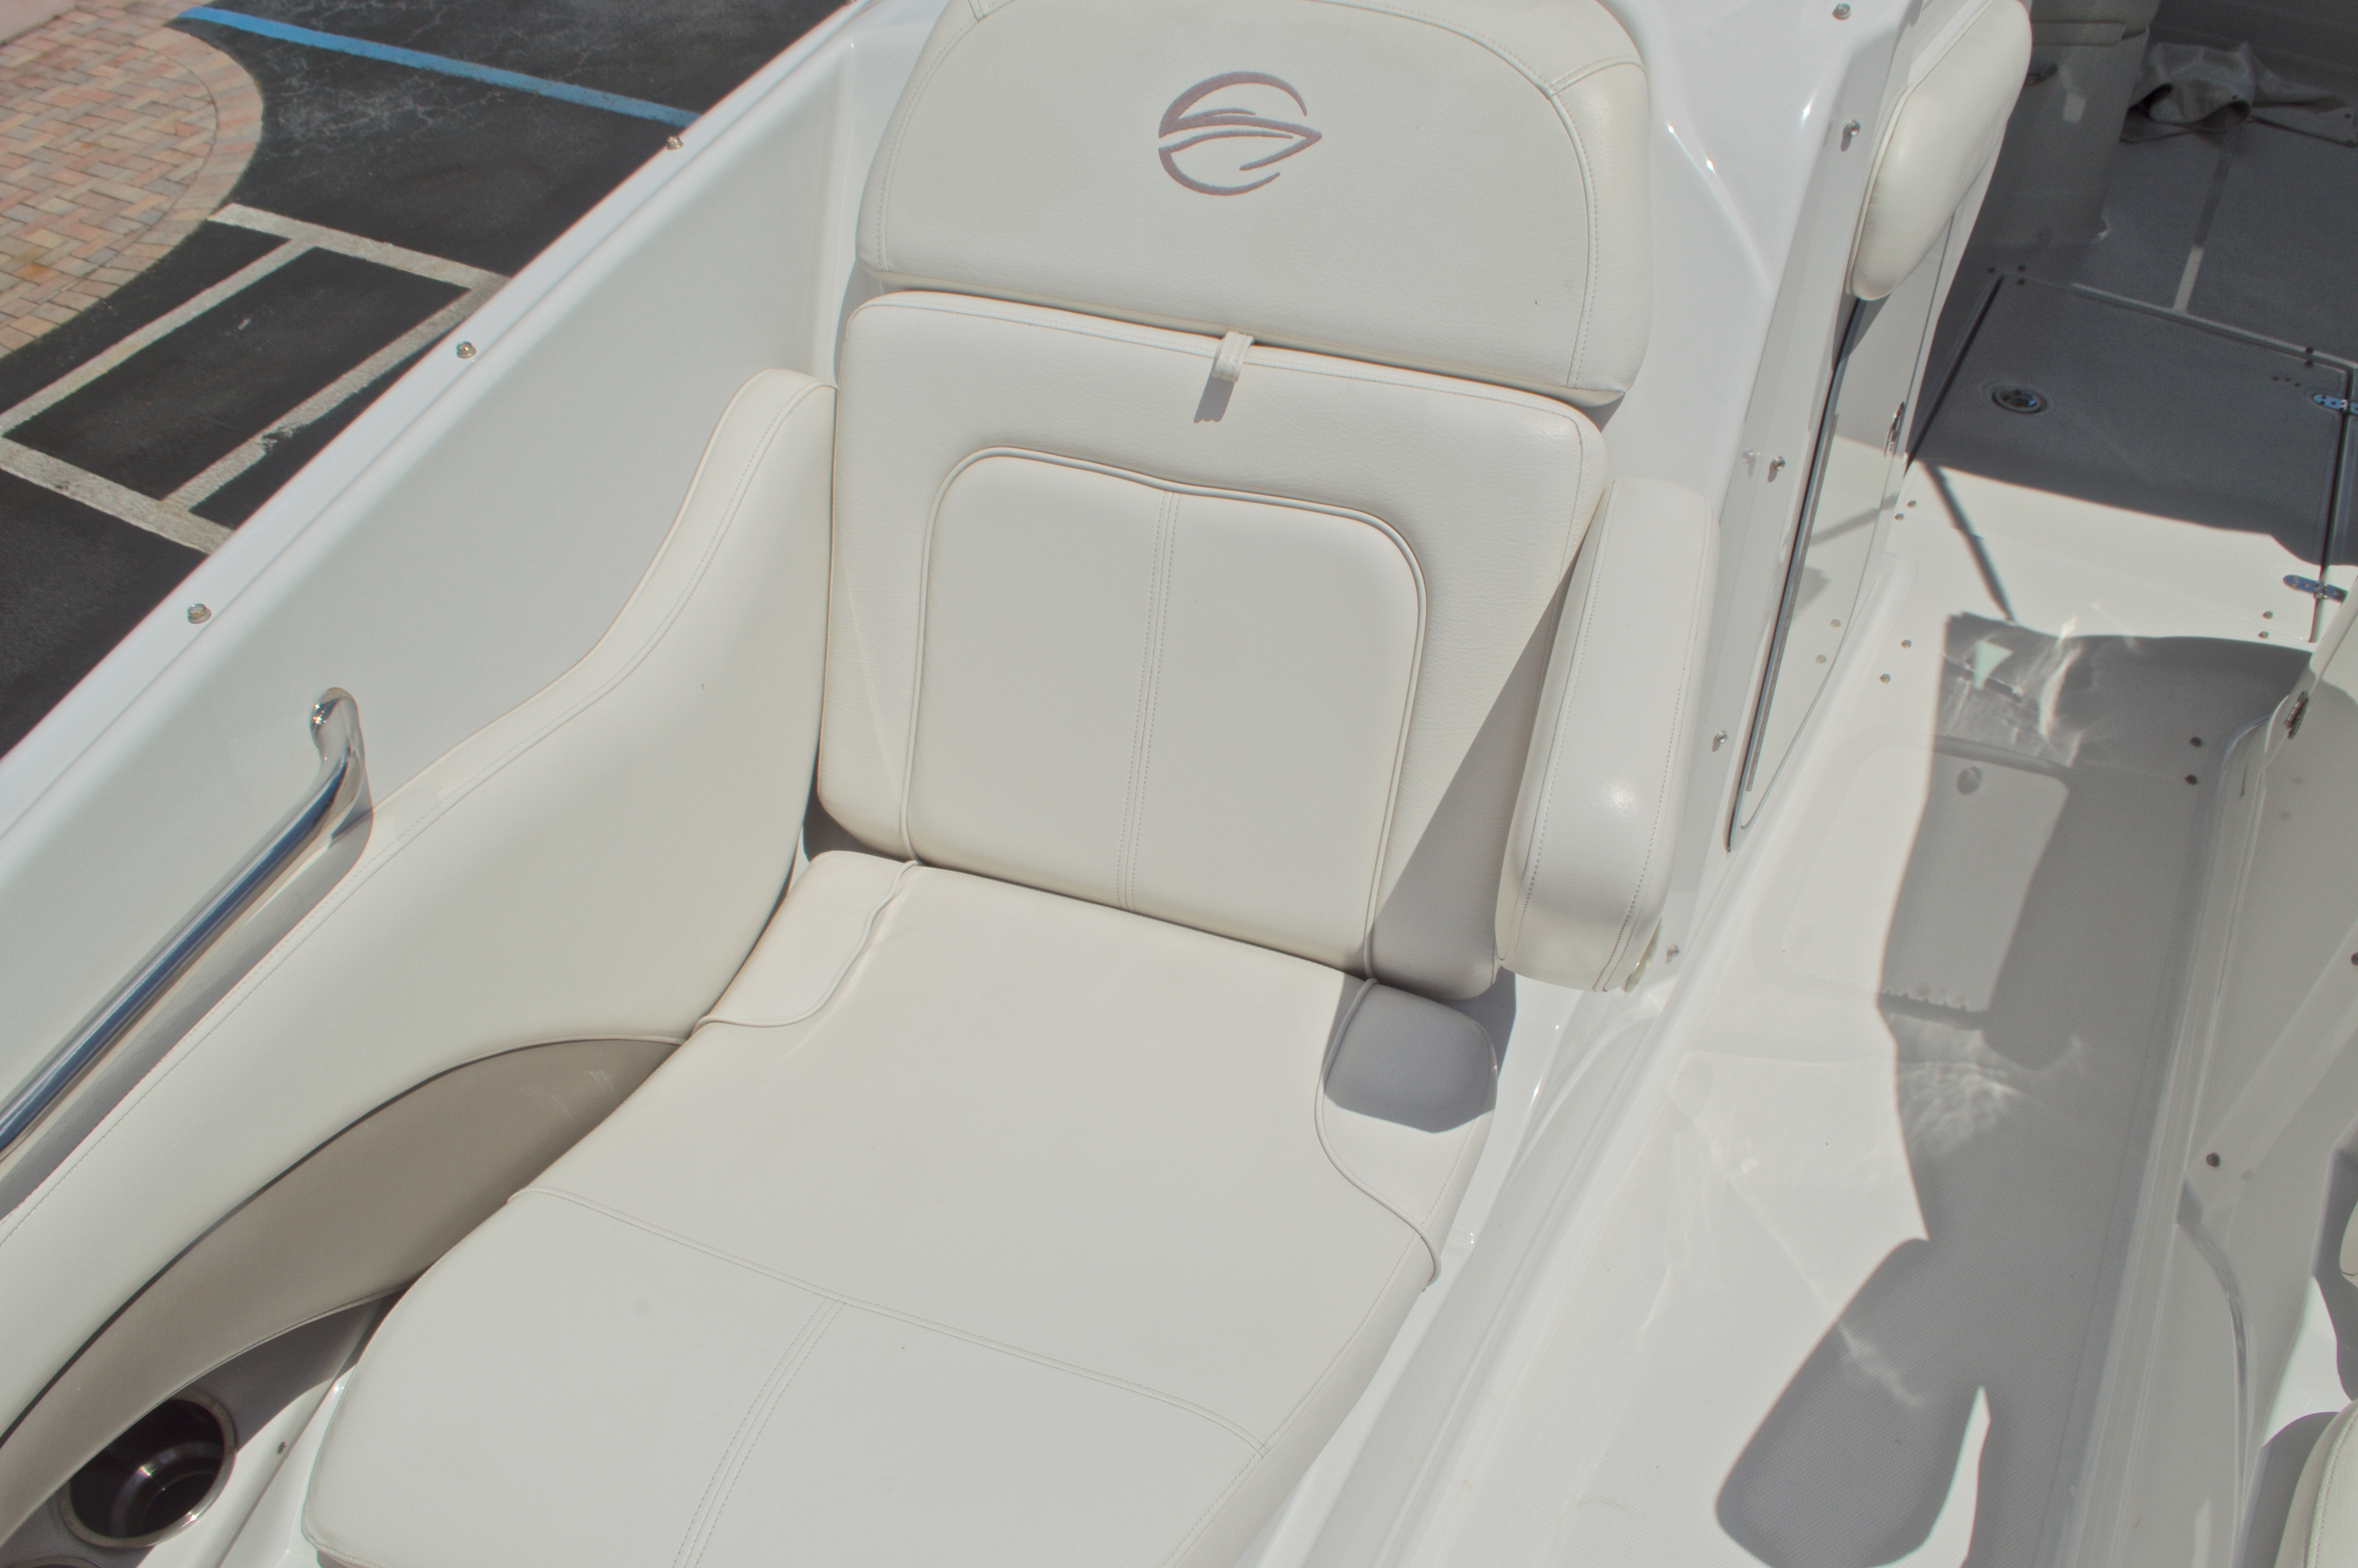 Thumbnail 66 for Used 2009 Crownline 300 LS boat for sale in West Palm Beach, FL